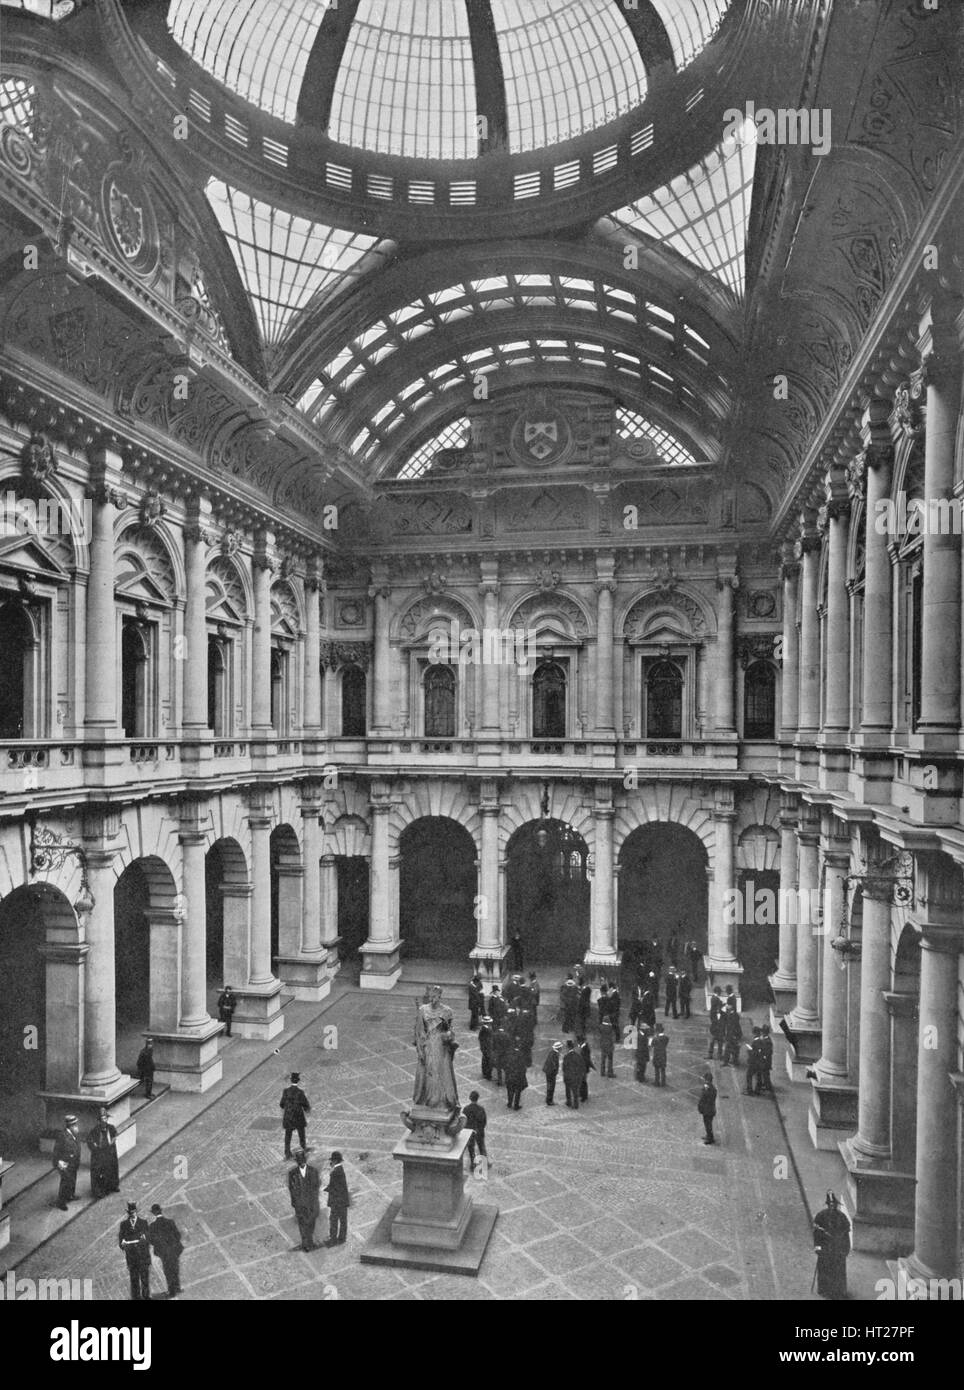 Interior of the Royal Exchange, City of London, c1910 (1911). Artist: Unknown. - Stock Image